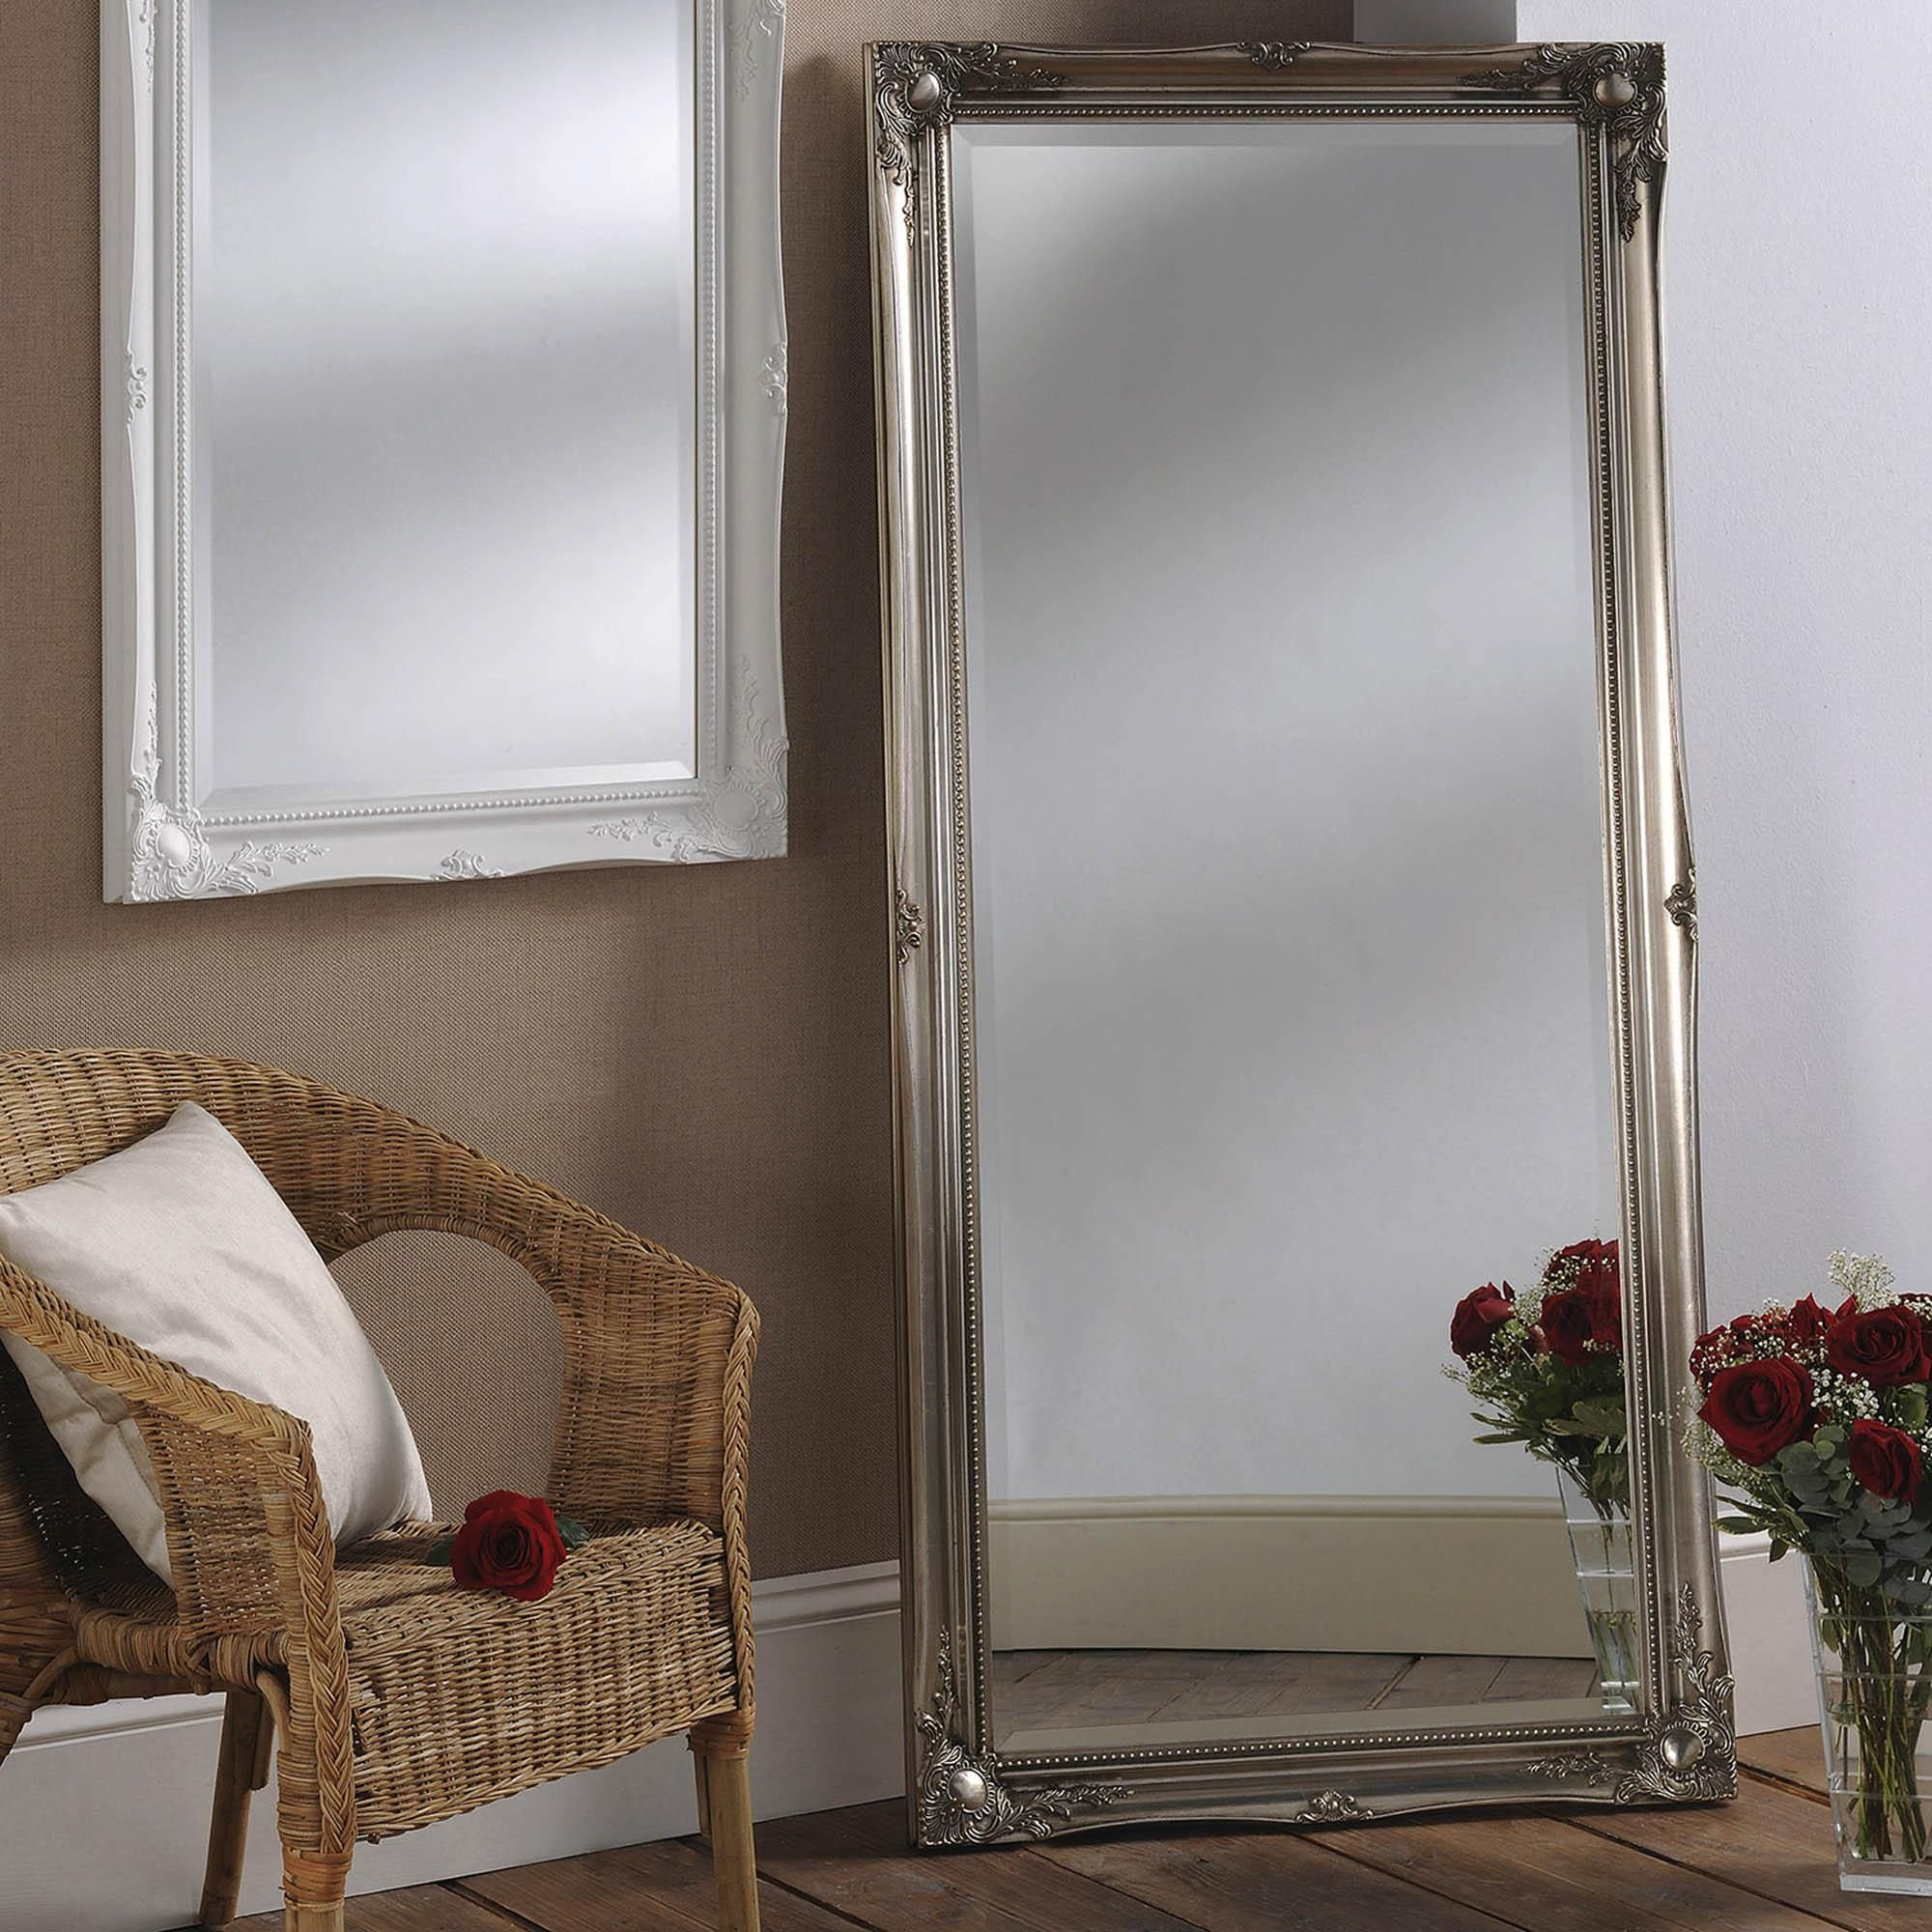 Dunelm Silver Chamberry 168x46cm Leaner Mirror Floor Standing Mirror Baroque Mirror Mirror Decor Living Room